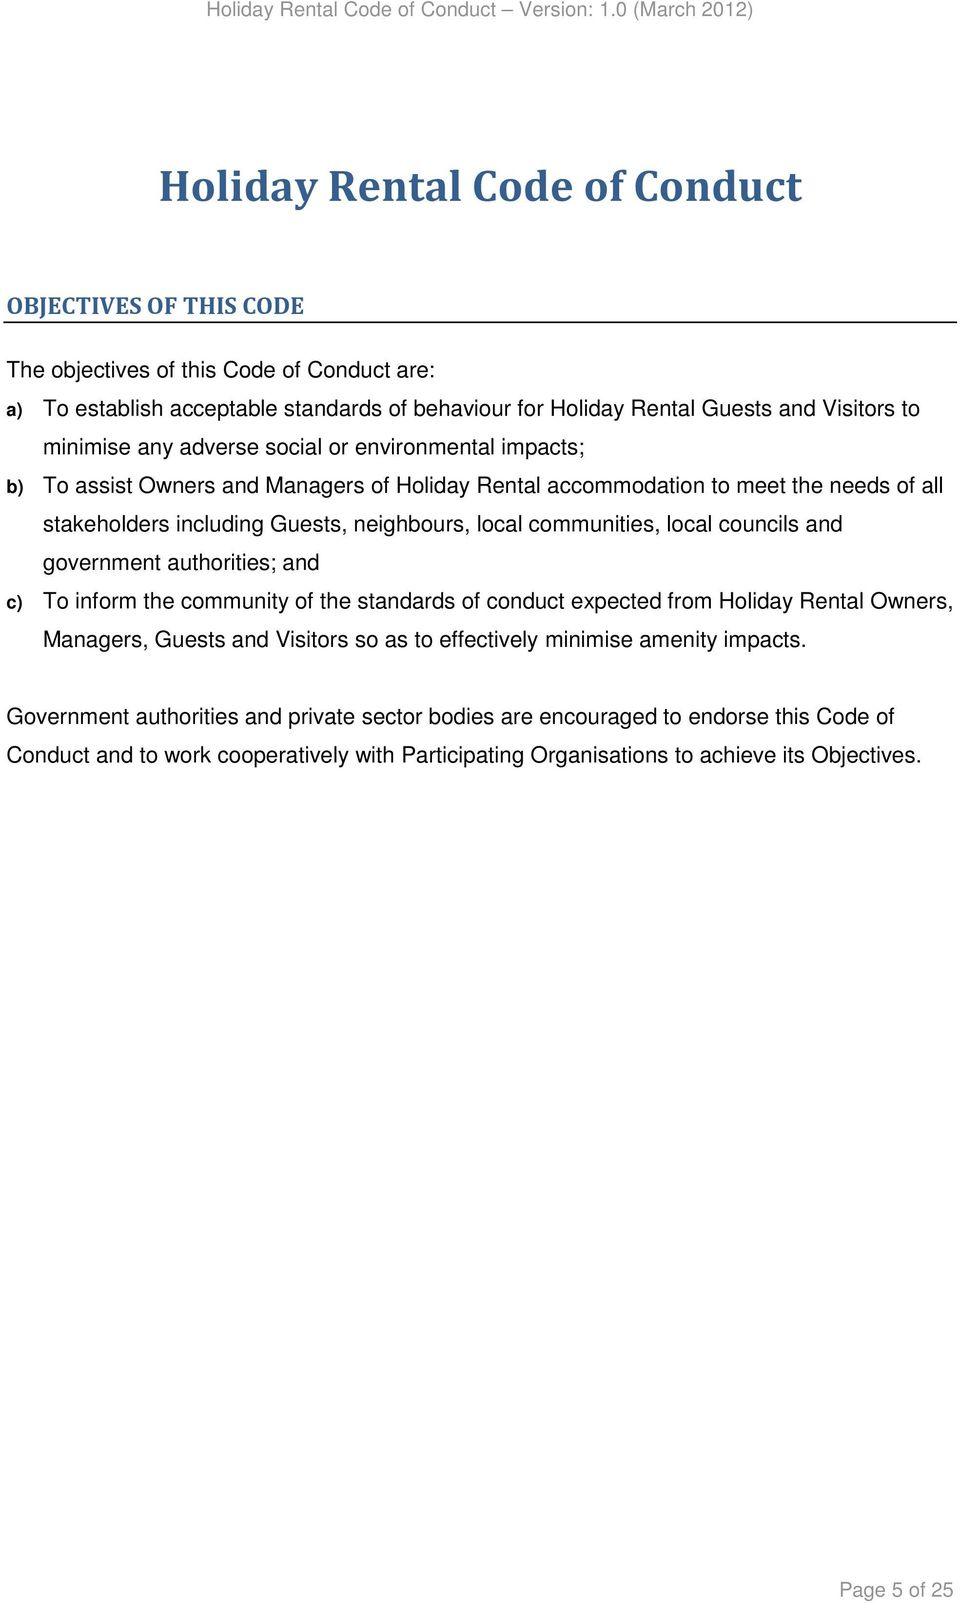 local councils and government authorities; and c) To inform the community of the standards of conduct expected from Holiday Rental Owners, Managers, Guests and Visitors so as to effectively minimise